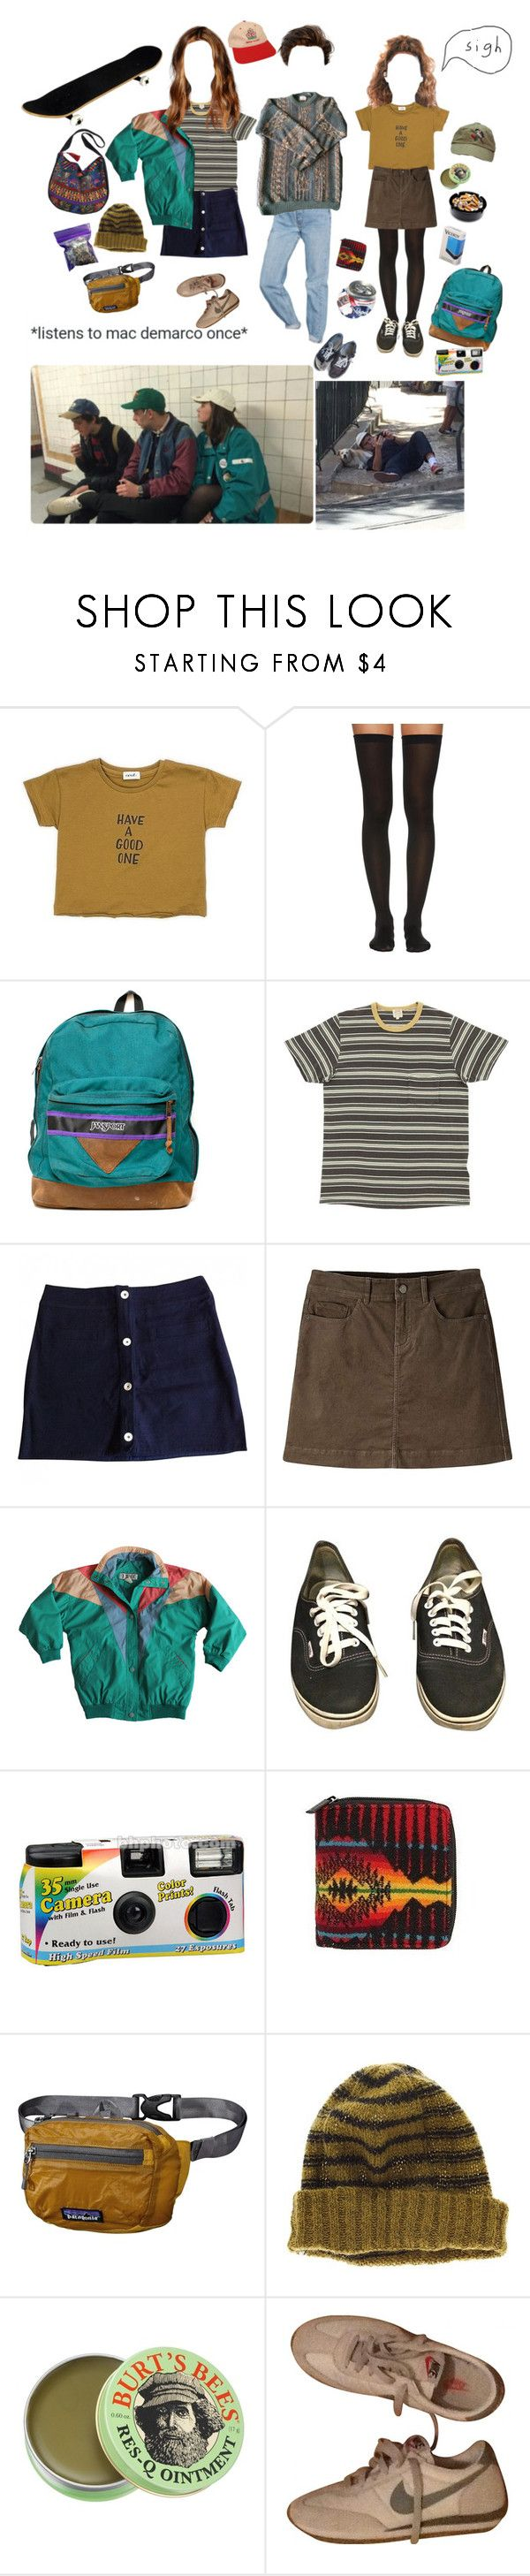 """""""listens to mac demarco once"""" by sam-penzance ❤ liked on Polyvore featuring Urban Outfitters, Wolford, JanSport, Claudie Pierlot, Mountain Khakis, Vans, American Apparel, INC International Concepts, Patagonia and Madewell"""